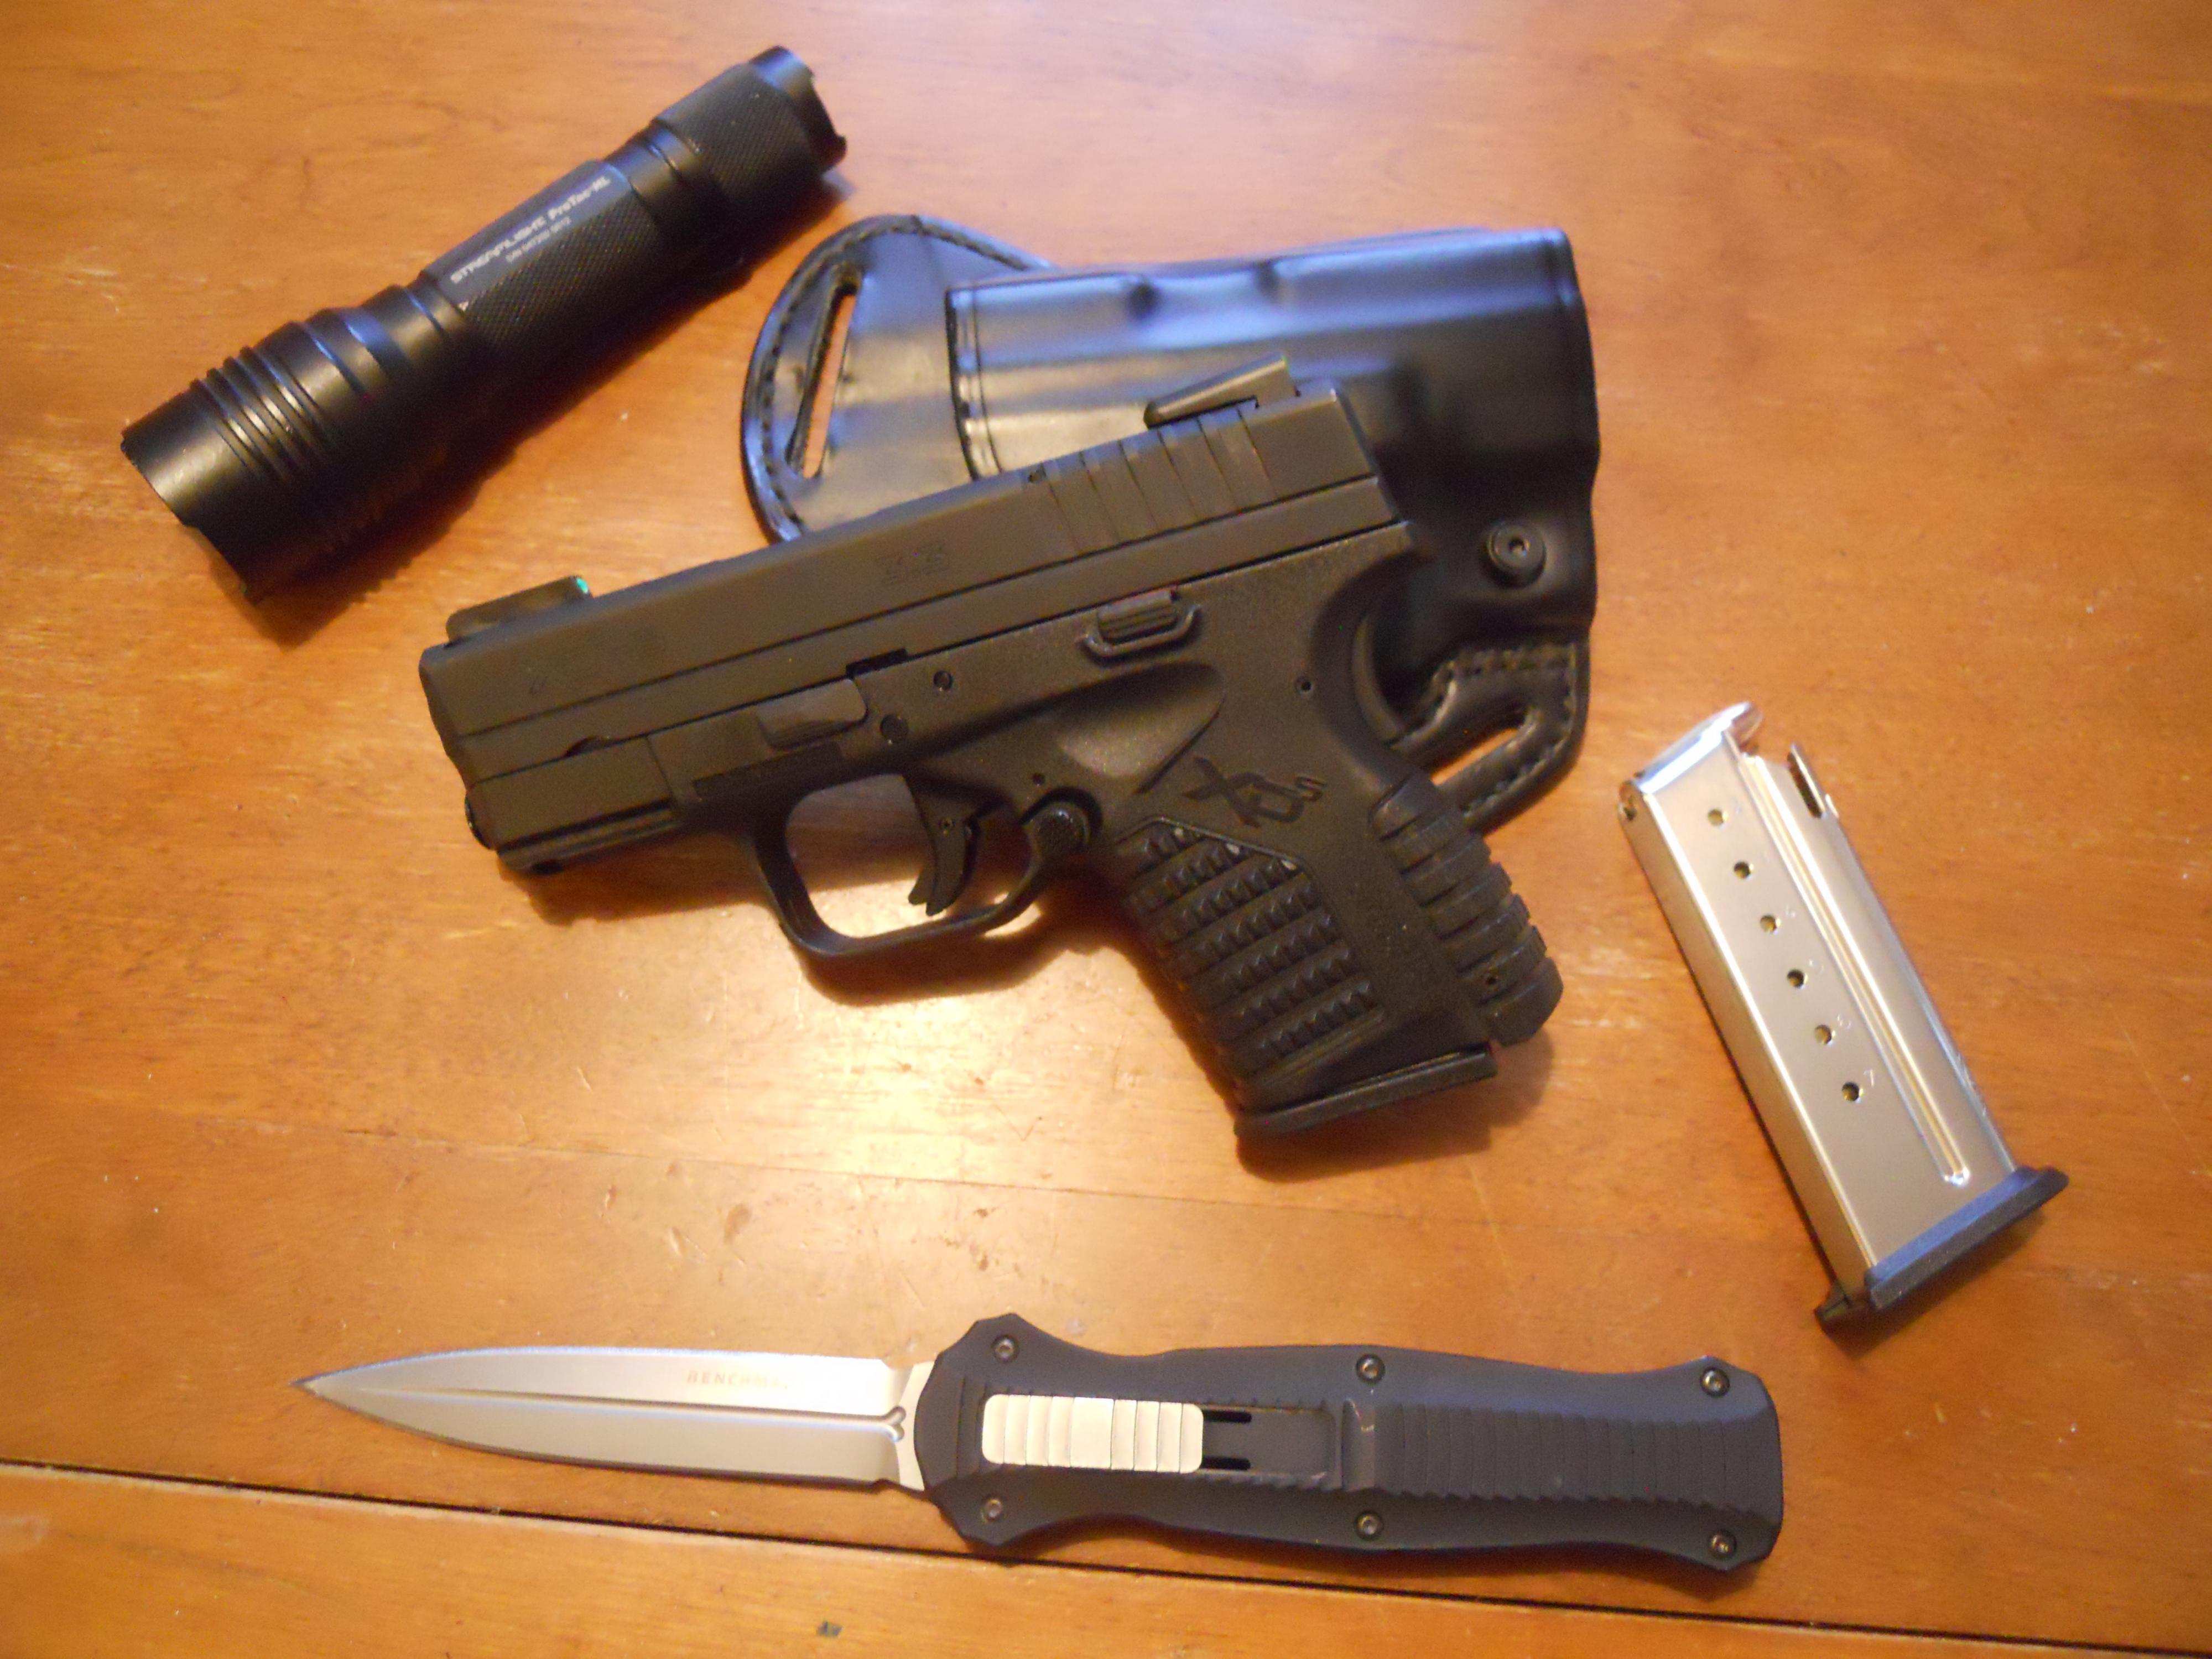 Another Concealed Carry Pistol (XDs9)